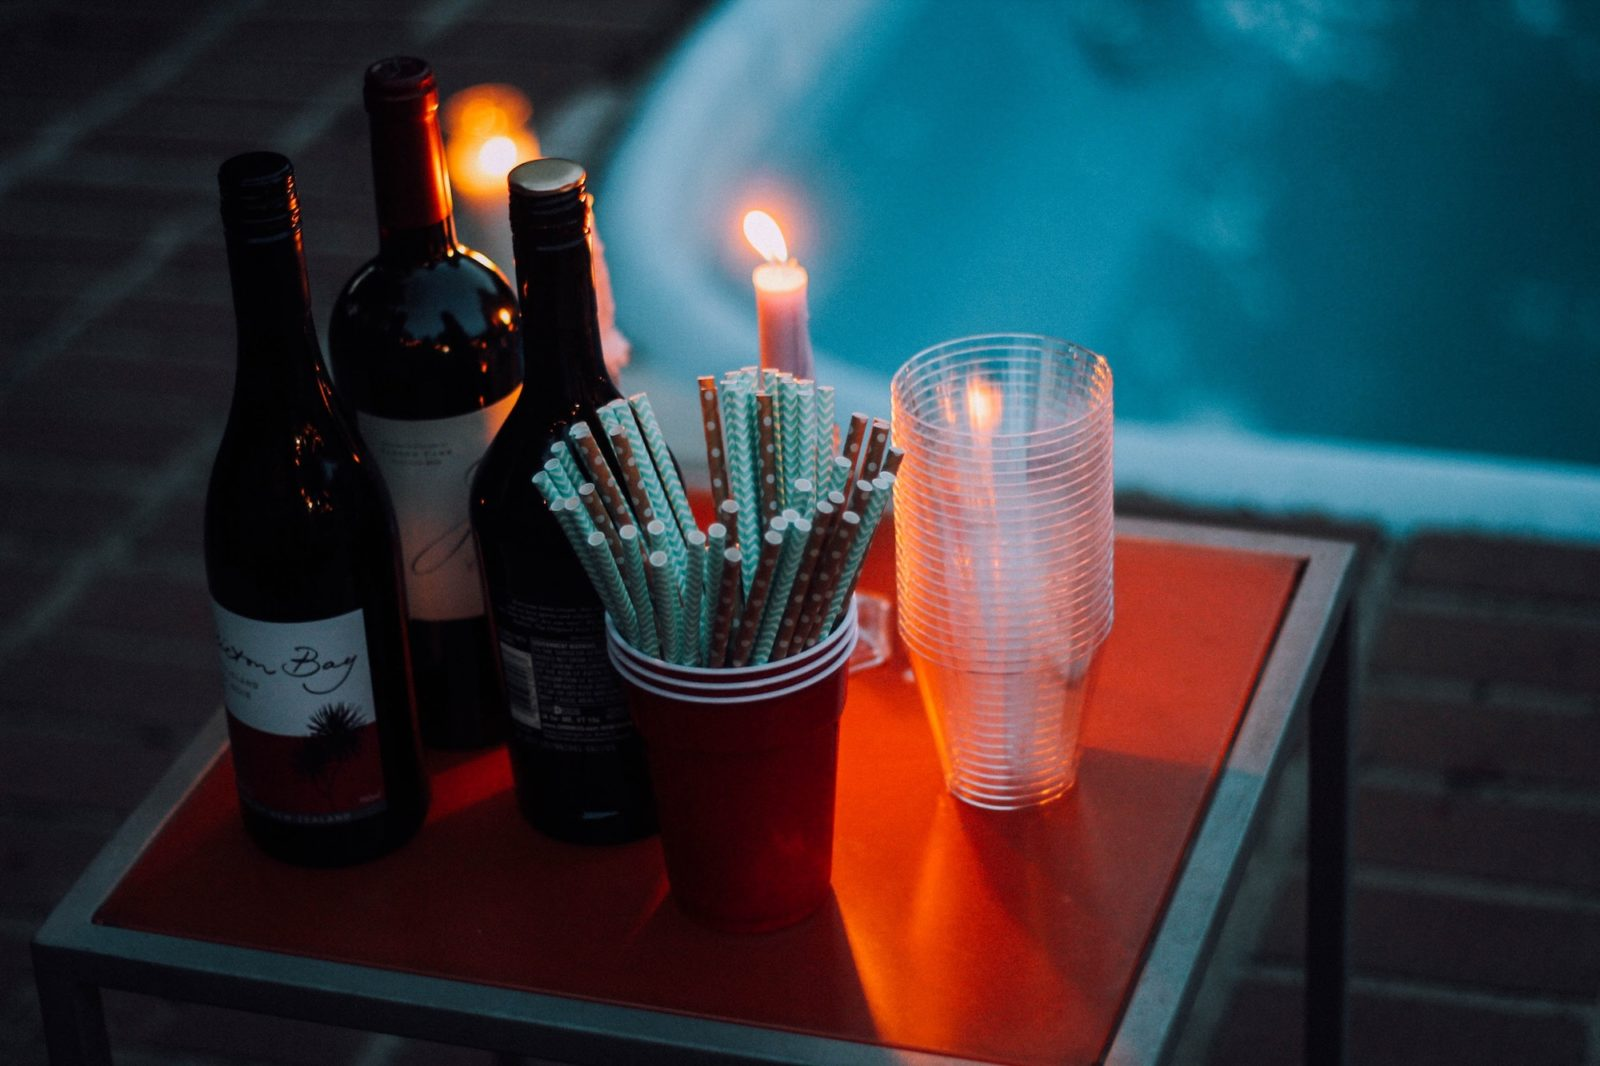 Following France's single use plastic ban, paper straws are becoming a common sight at 'apéros' (parties) across Paris.